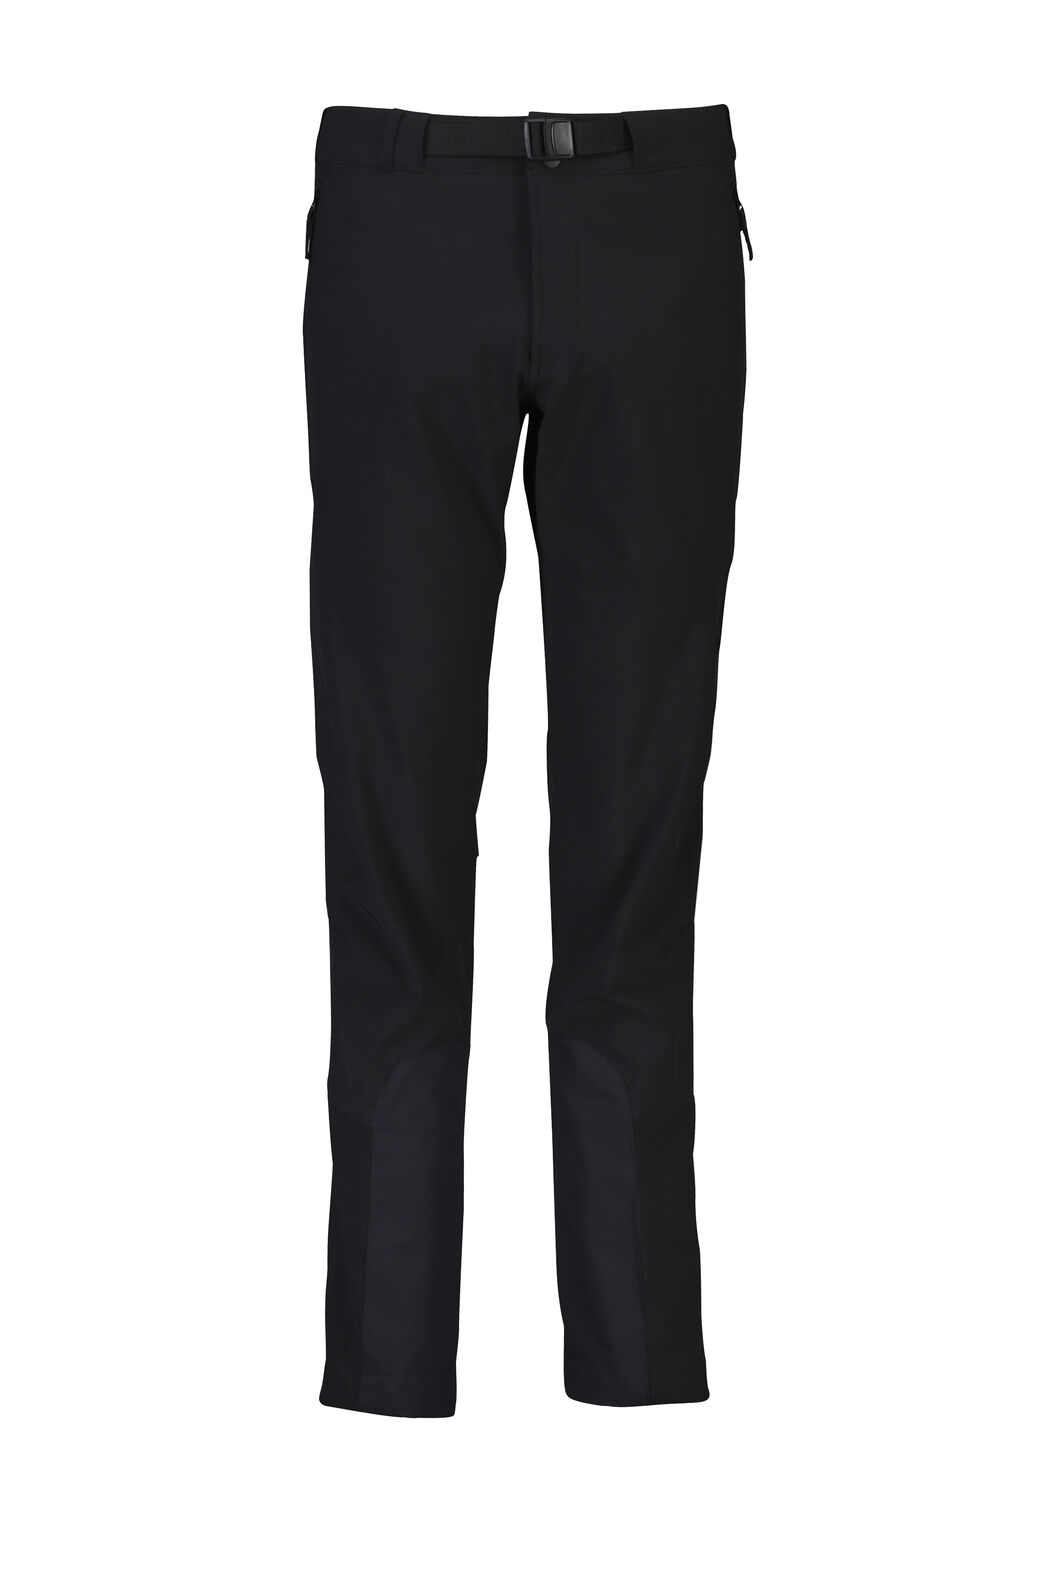 Macpac Fitzroy Alpine Series Softshell Pants - Women's, Black, hi-res